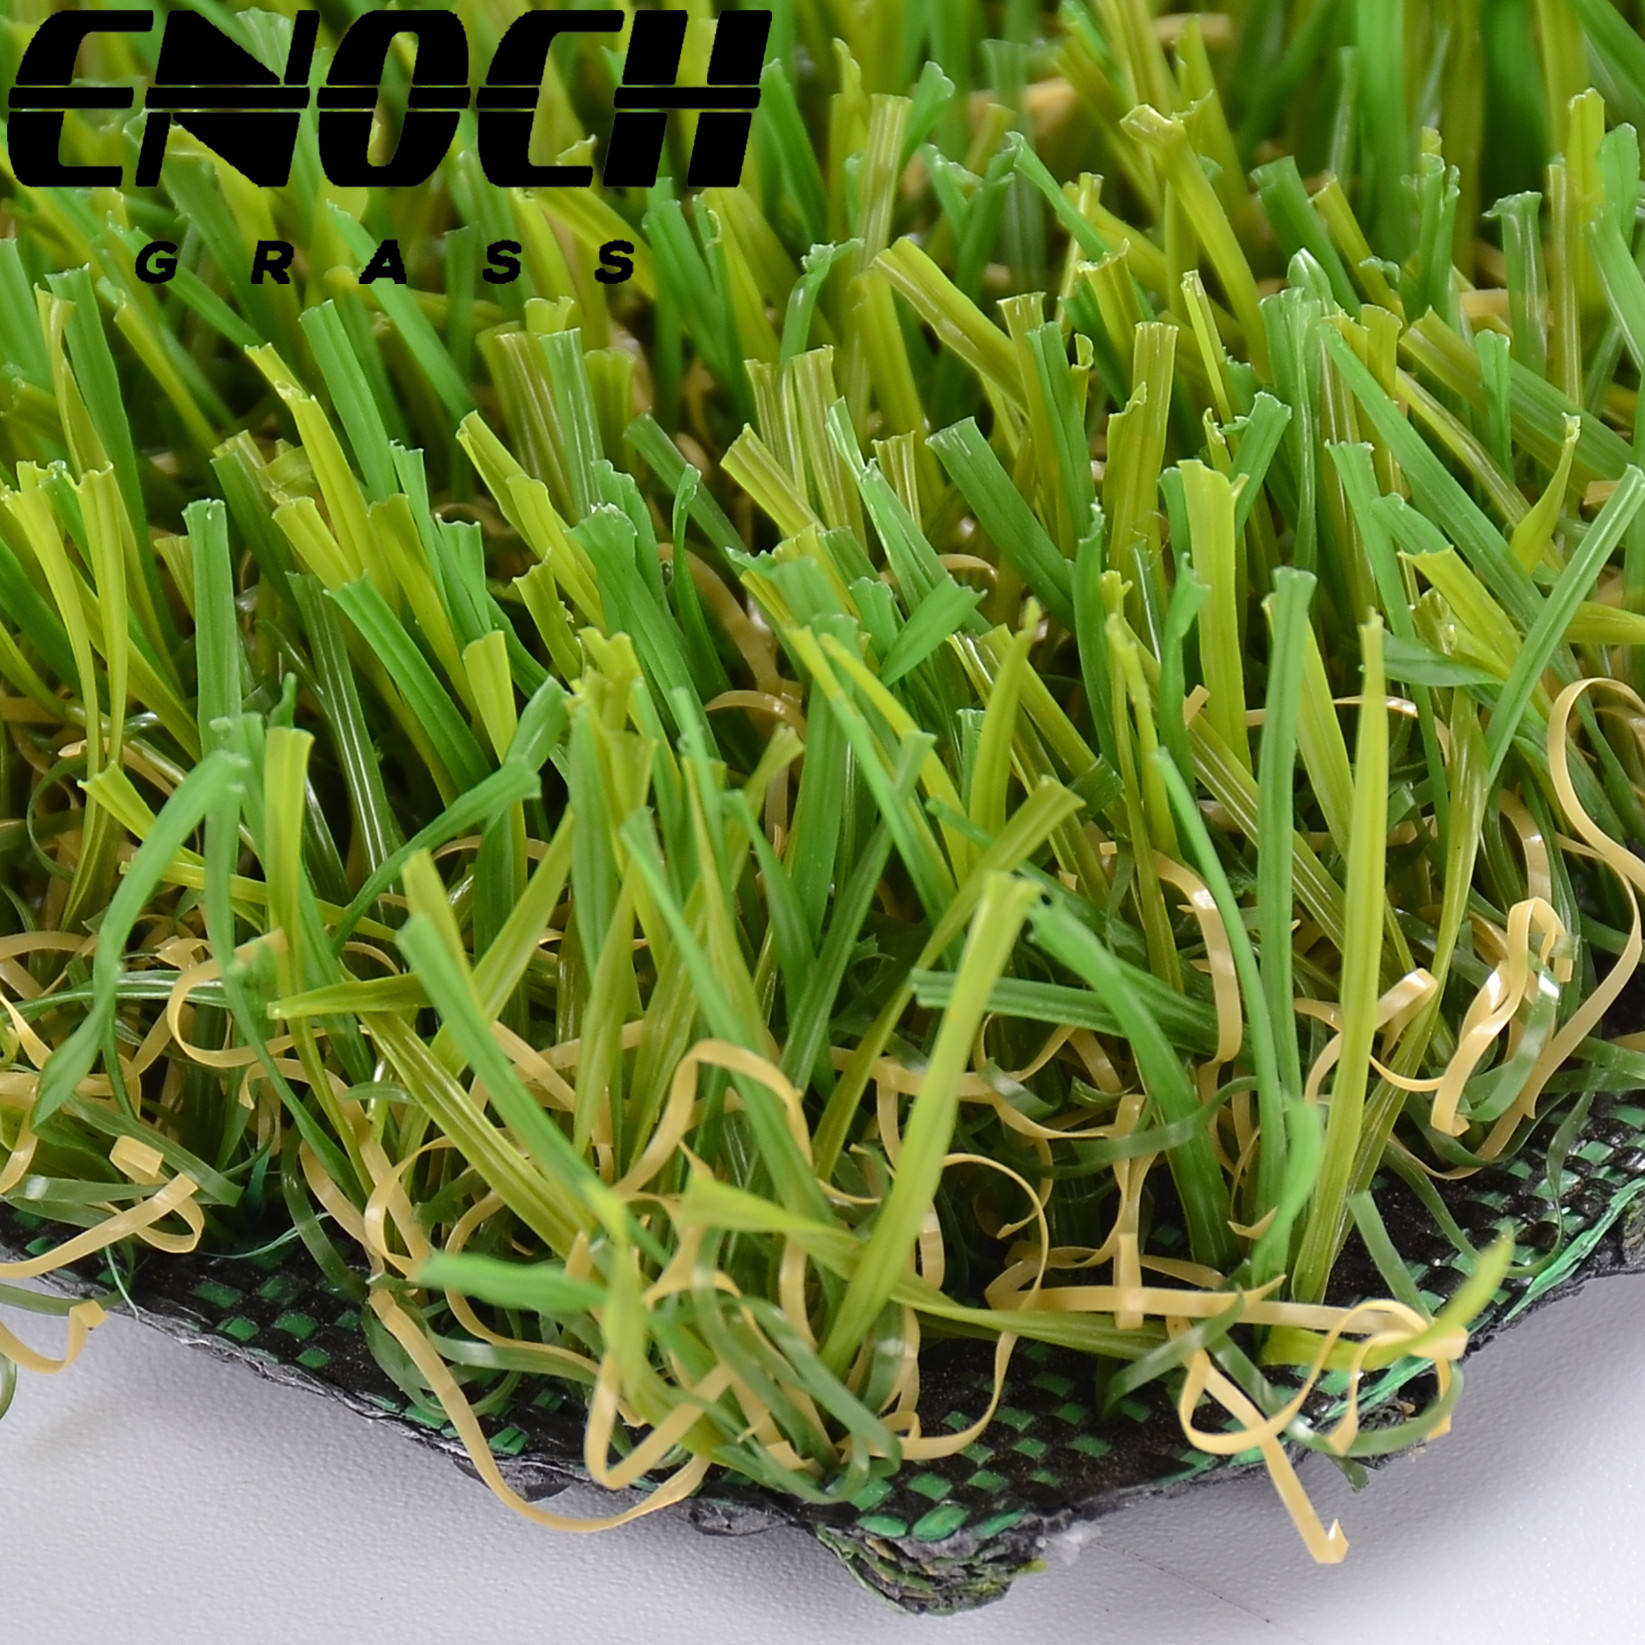 Free Samples ENOCH GRASS 20mm thin Landscaping sythethic Artificial grass turf